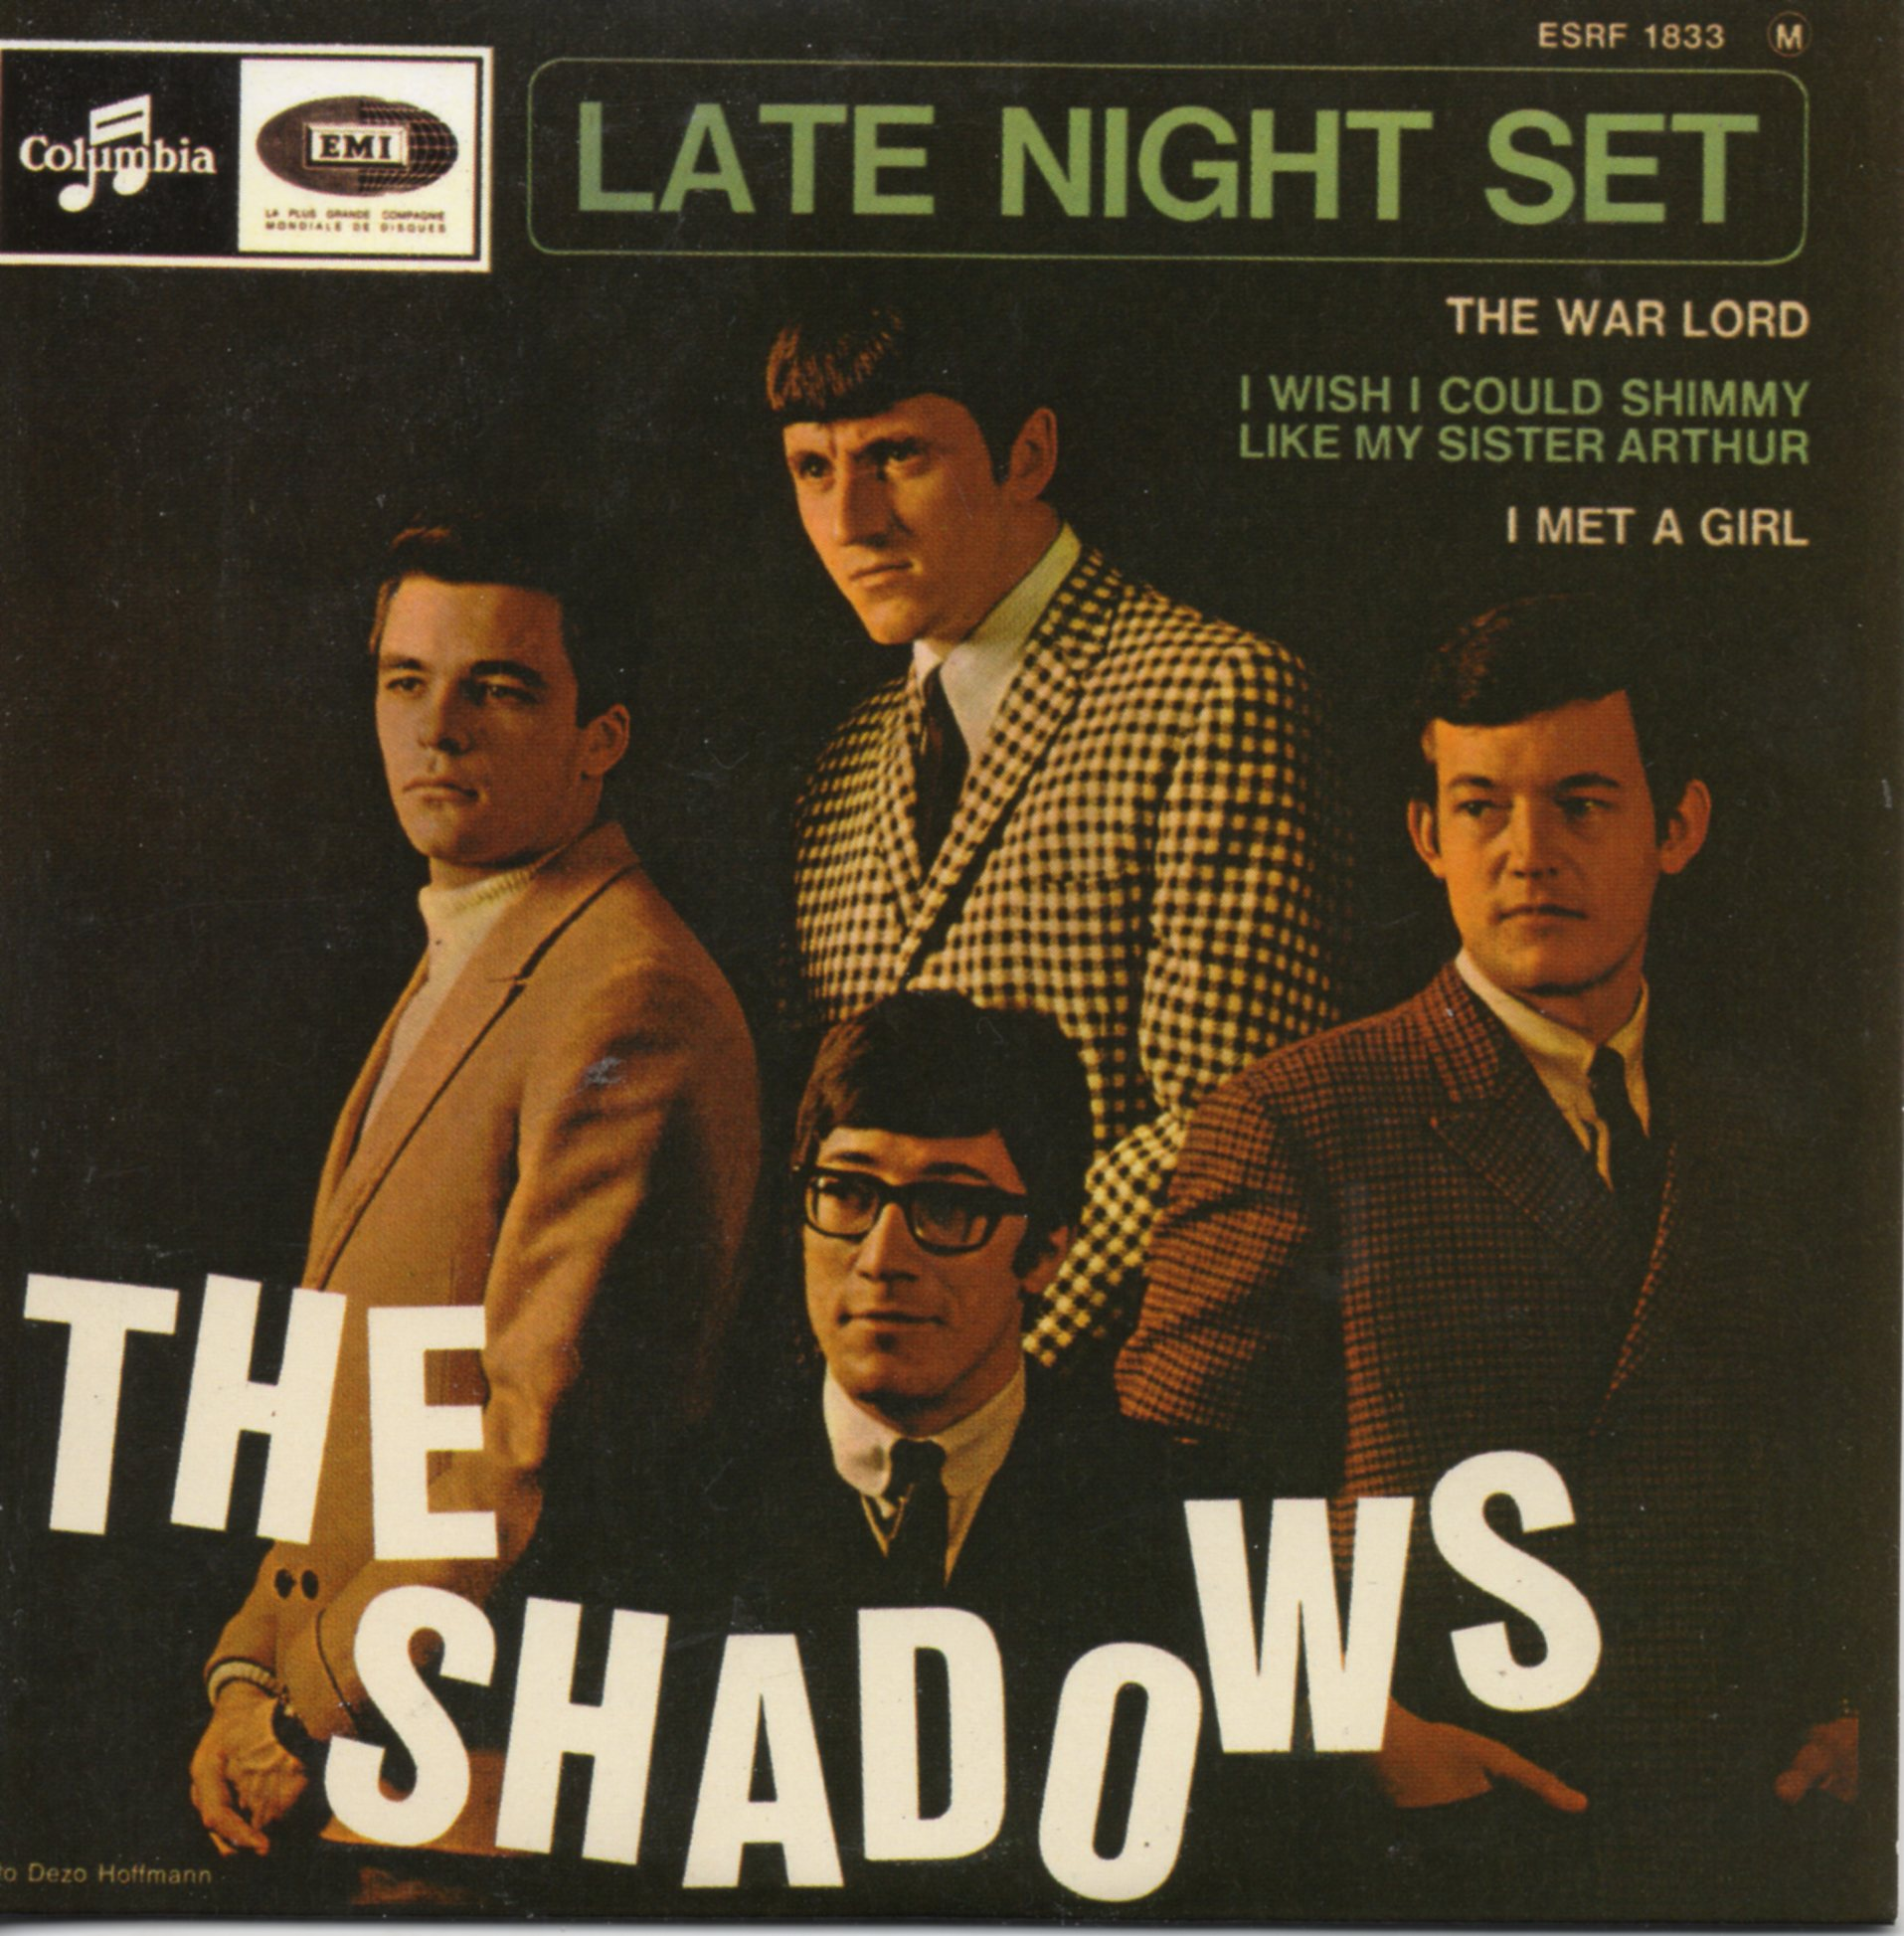 THE SHADOWS - Late Night Set - EP REPLICA - 4-track CARD SLEEVE - CD single